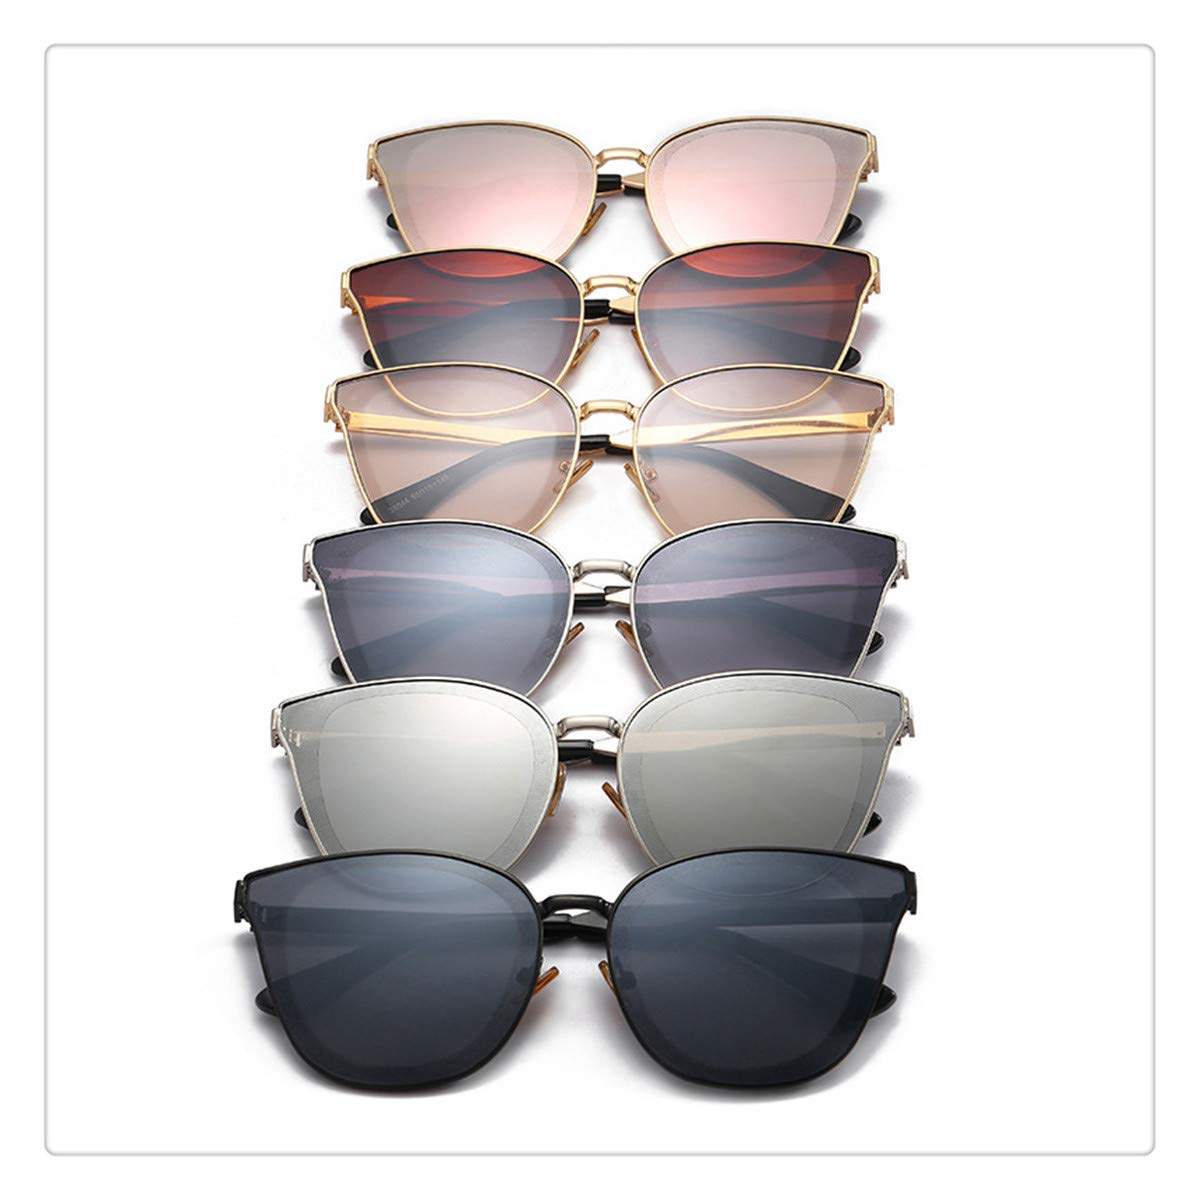 Elven Street New Classic Large Frame Anti-UV Diamond Sunglasses UV400 Fashion UV Protection for Women and Men(Combination)